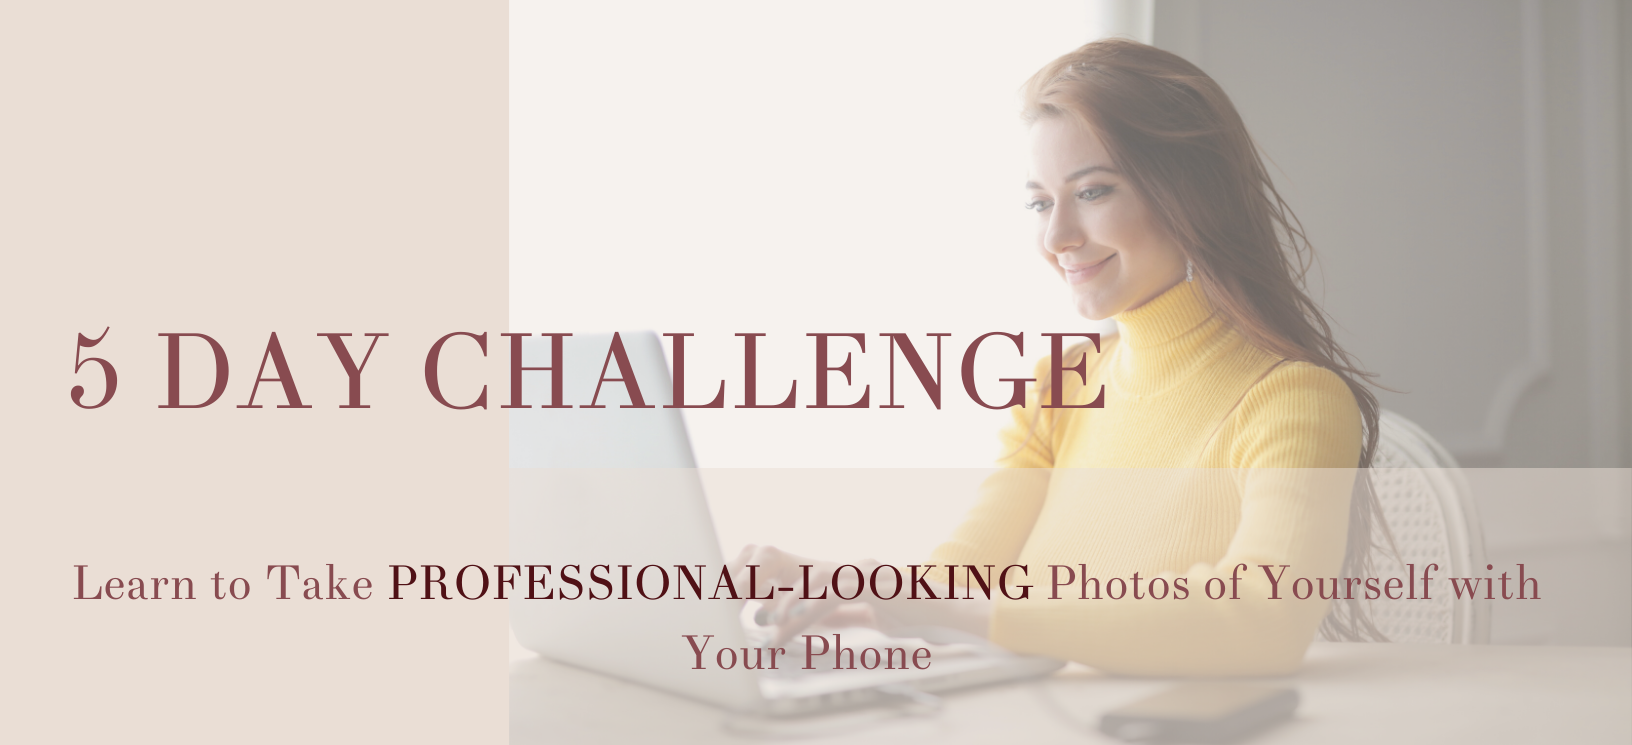 Learn to take professional-looking photos with your phone